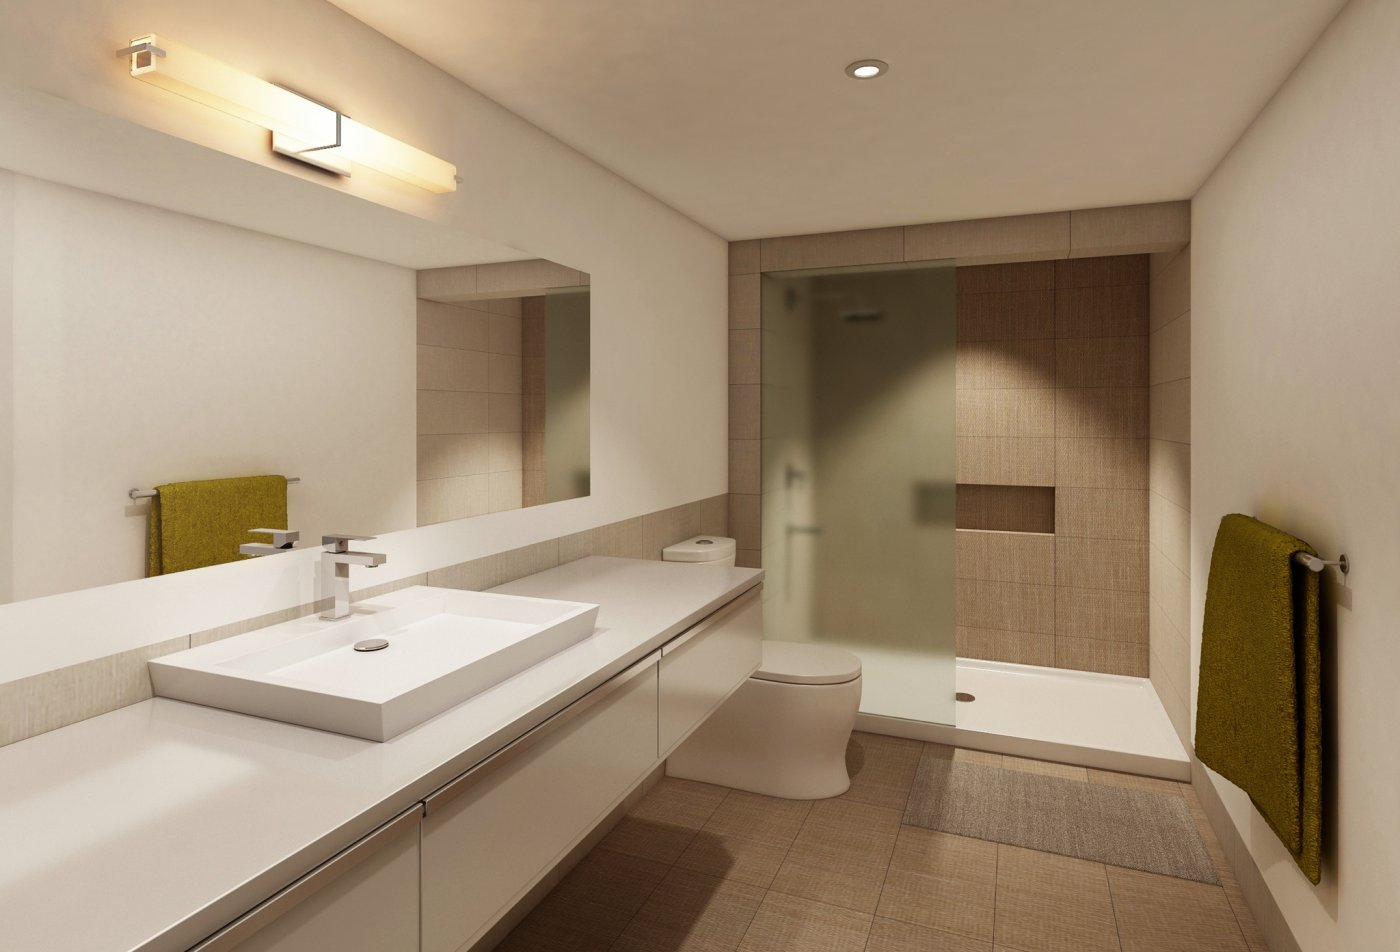 Bathroom Partitions Cleveland Ohio the flats at east bank | spacious waterfront apartments